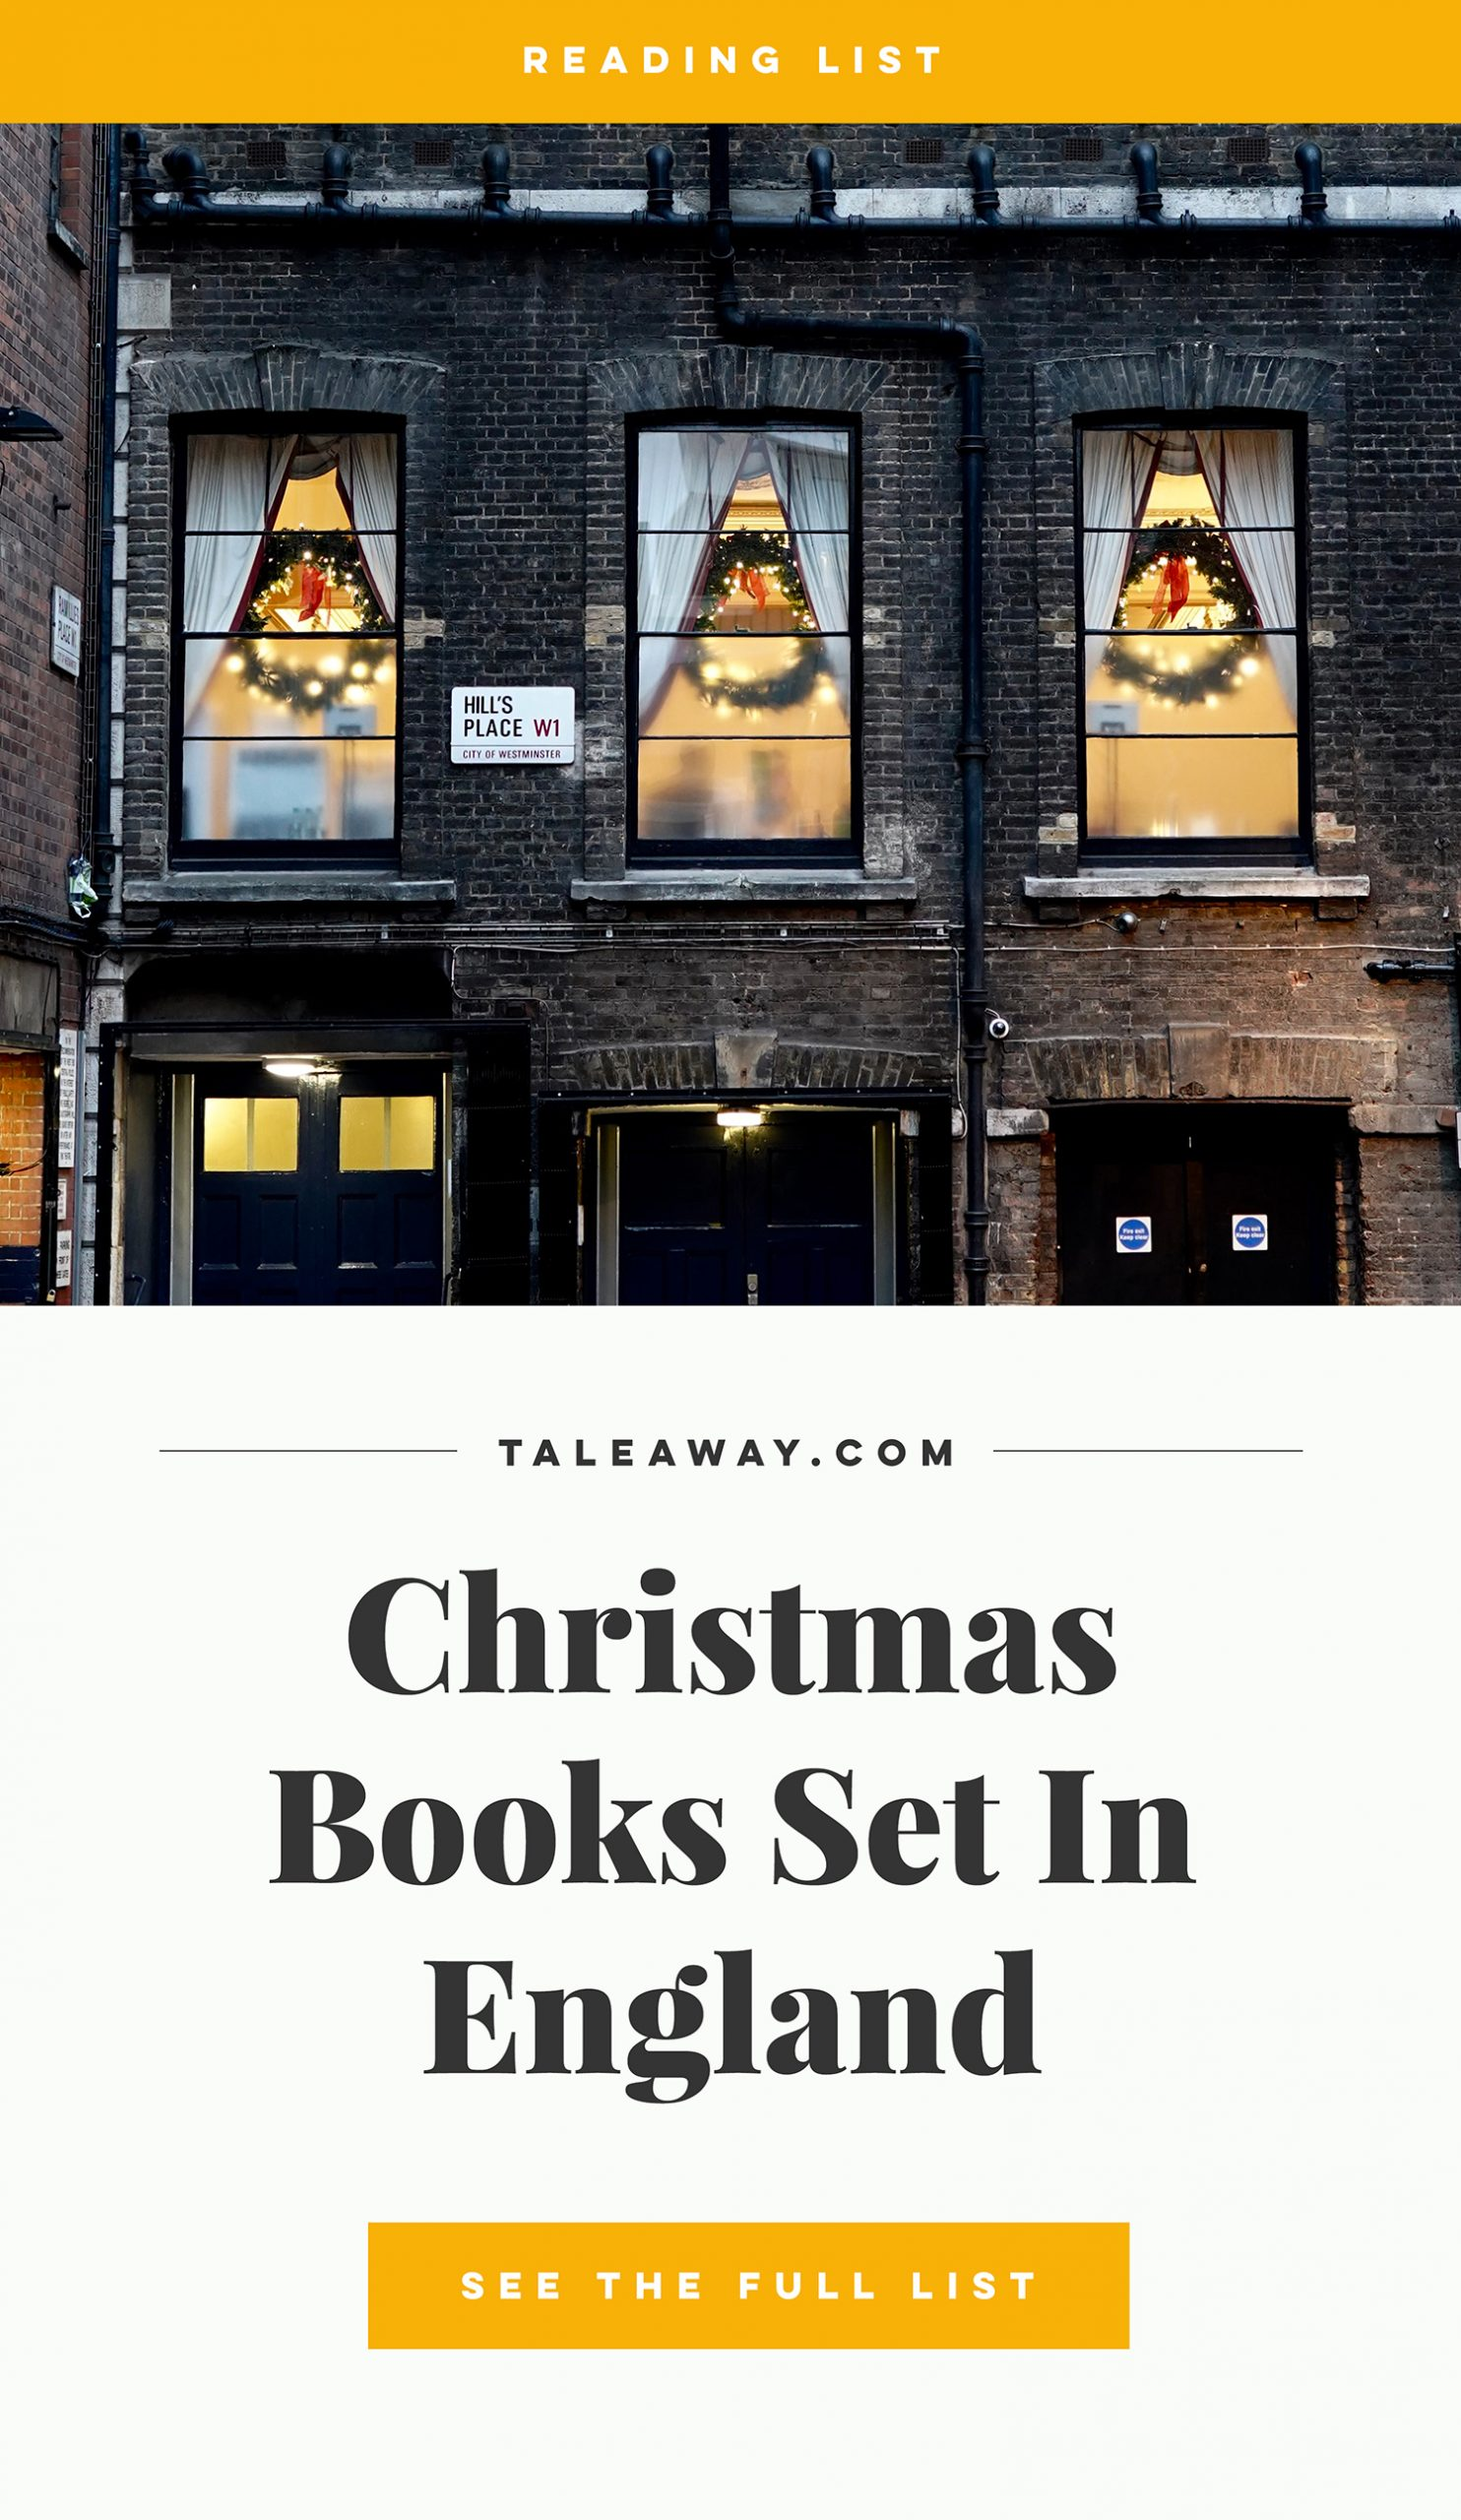 Christmas Books Set in England: christmas books set in uk, uk christmas books, christmas books 2019, amazon uk christmas books, christmas novels, best christmas books uk, christmas books united kingdom, uk christmas novels, uk christmas literature, uk christmas fiction, christmas books for adults, christmas books amazon, christmas books list, christmas books gift guide, christmas holiday books, christmas in books, christmas books kindle, christmas books classic, christmas lovers books, christmas books novels, christmas books to read, uk holiday books, uk holiday reads